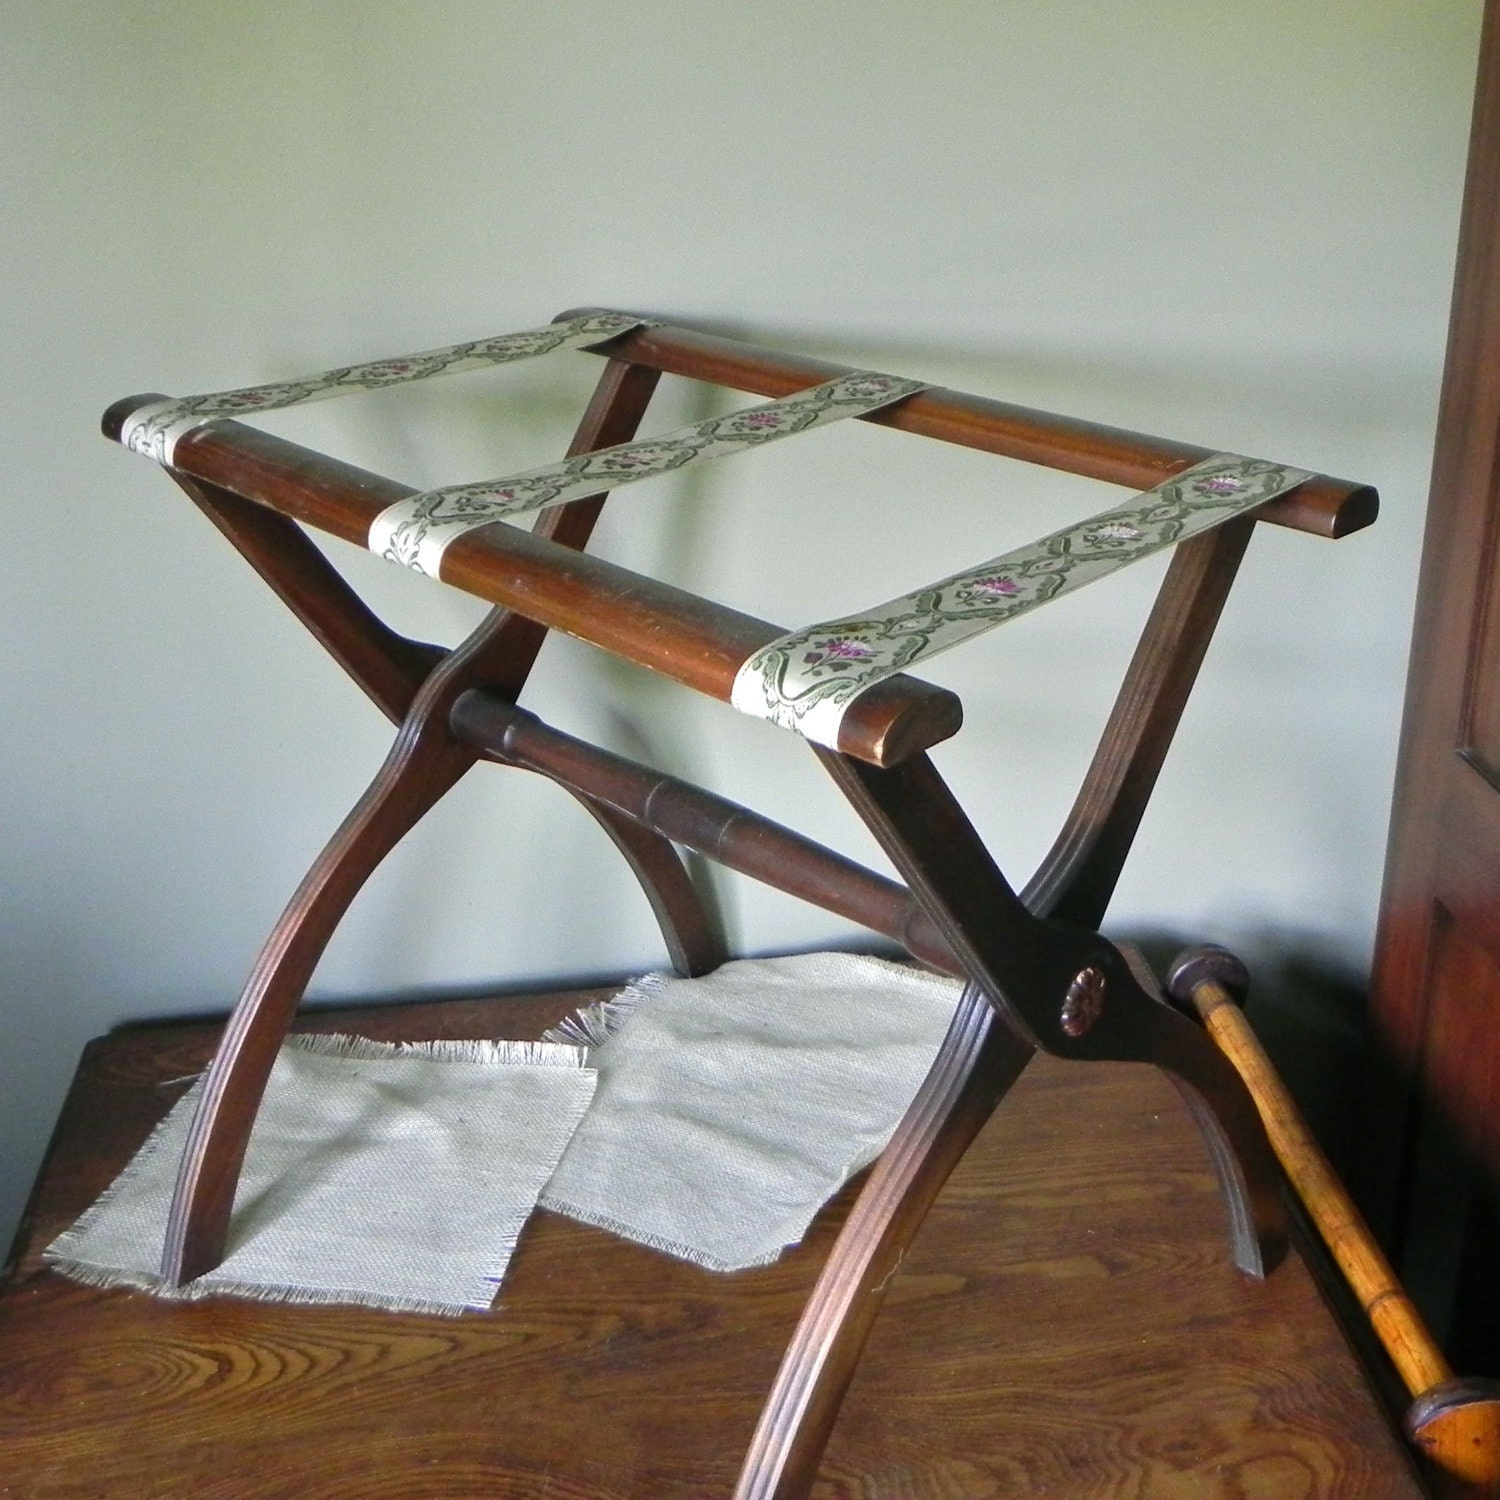 Vintage luggage rack stand tea table wood with tapestry